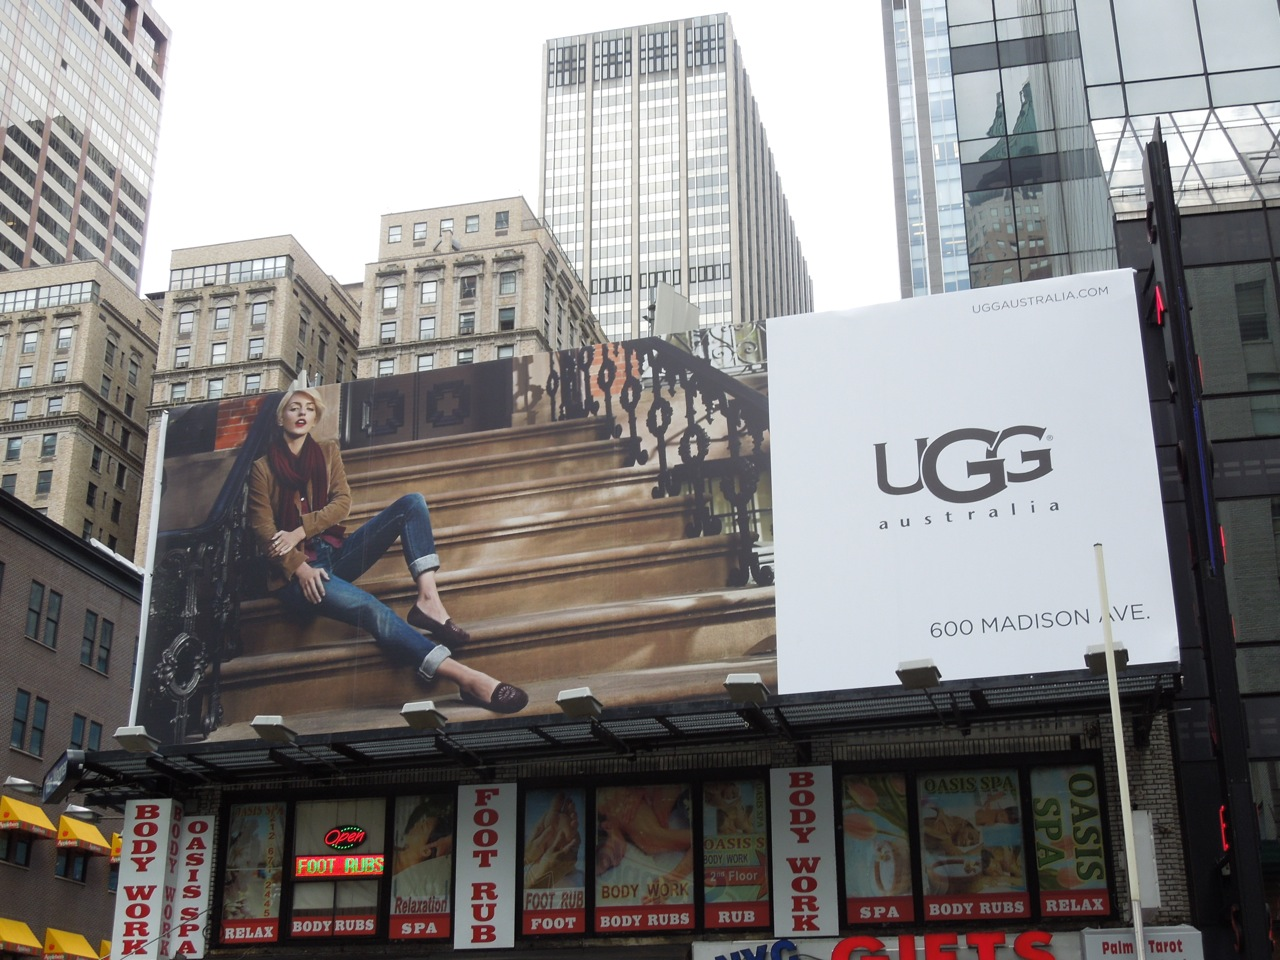 ugg shop times square